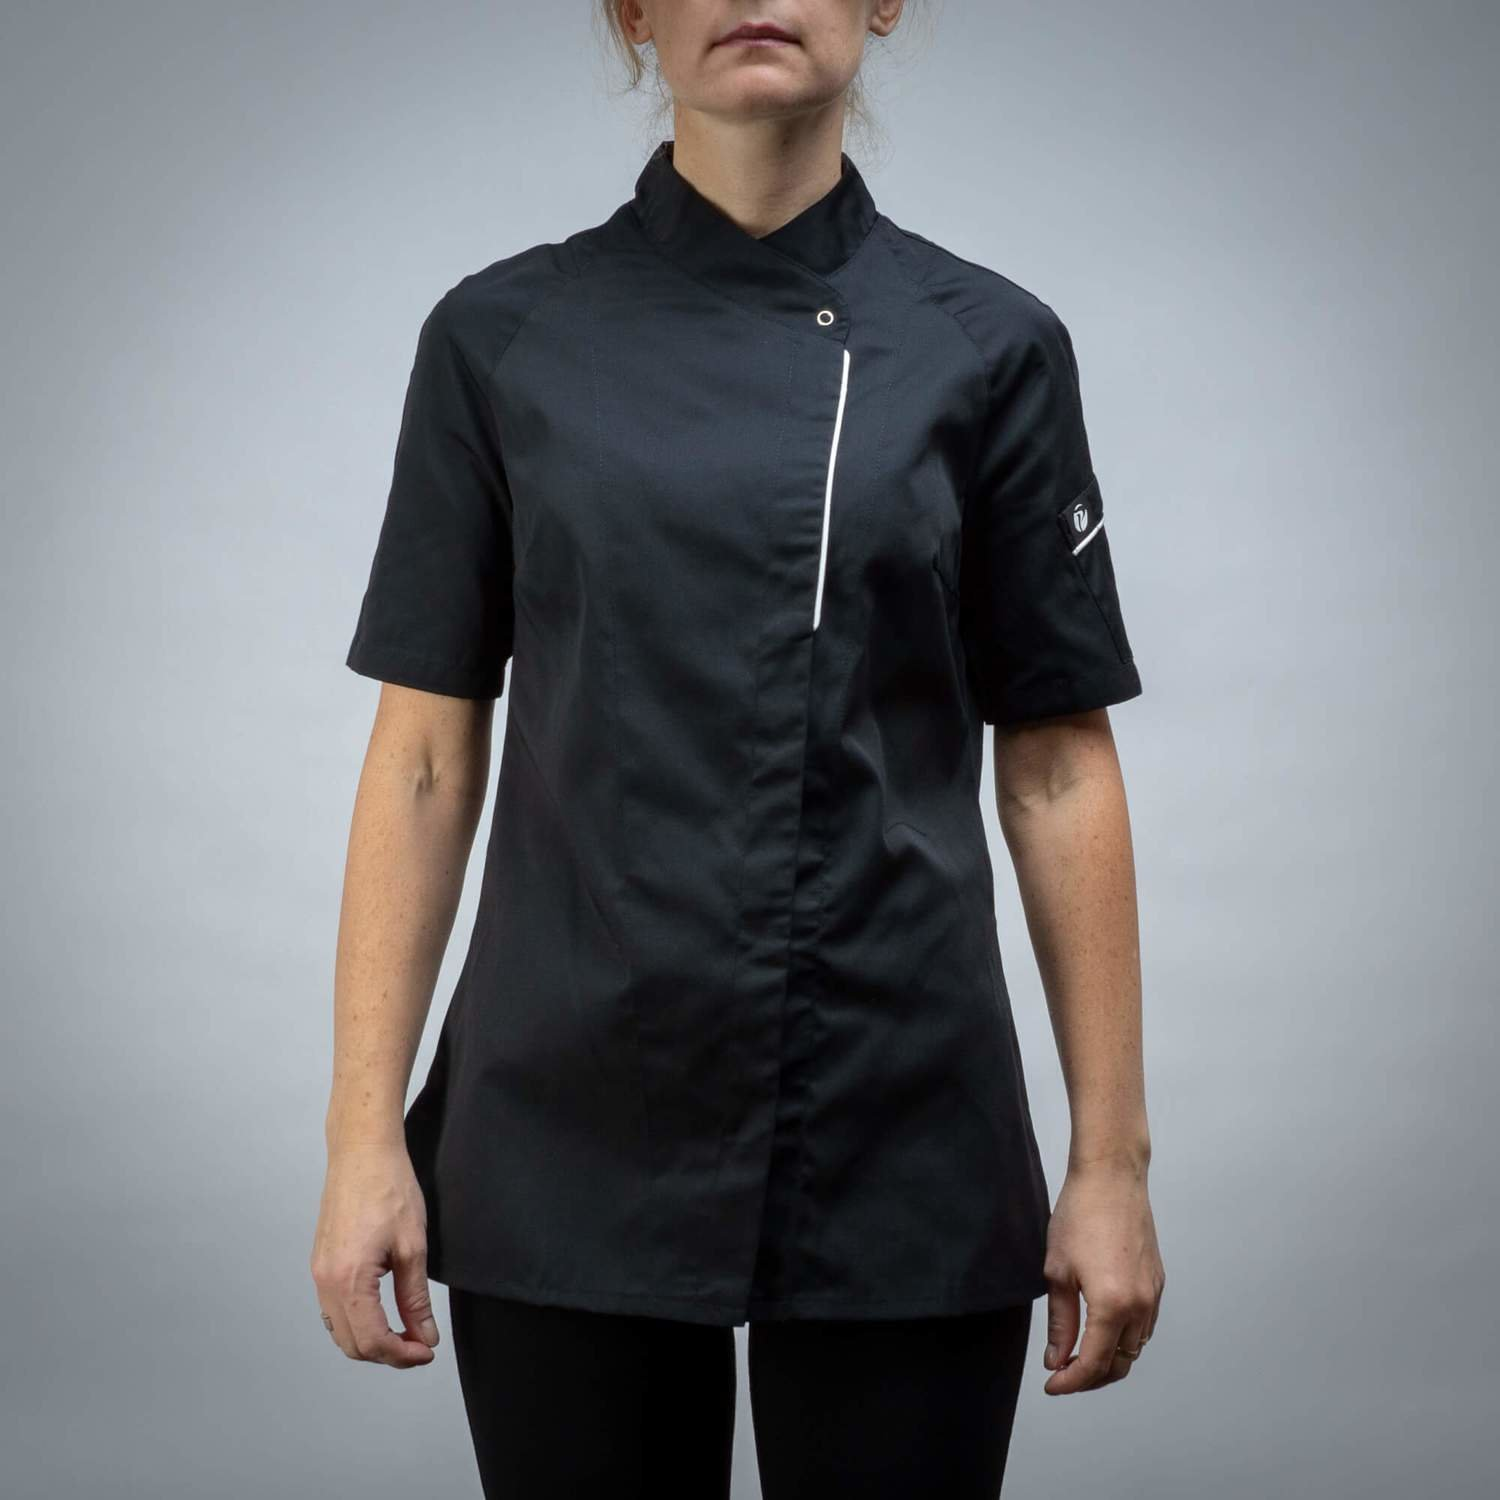 531ABS - CHEF'S JACKET